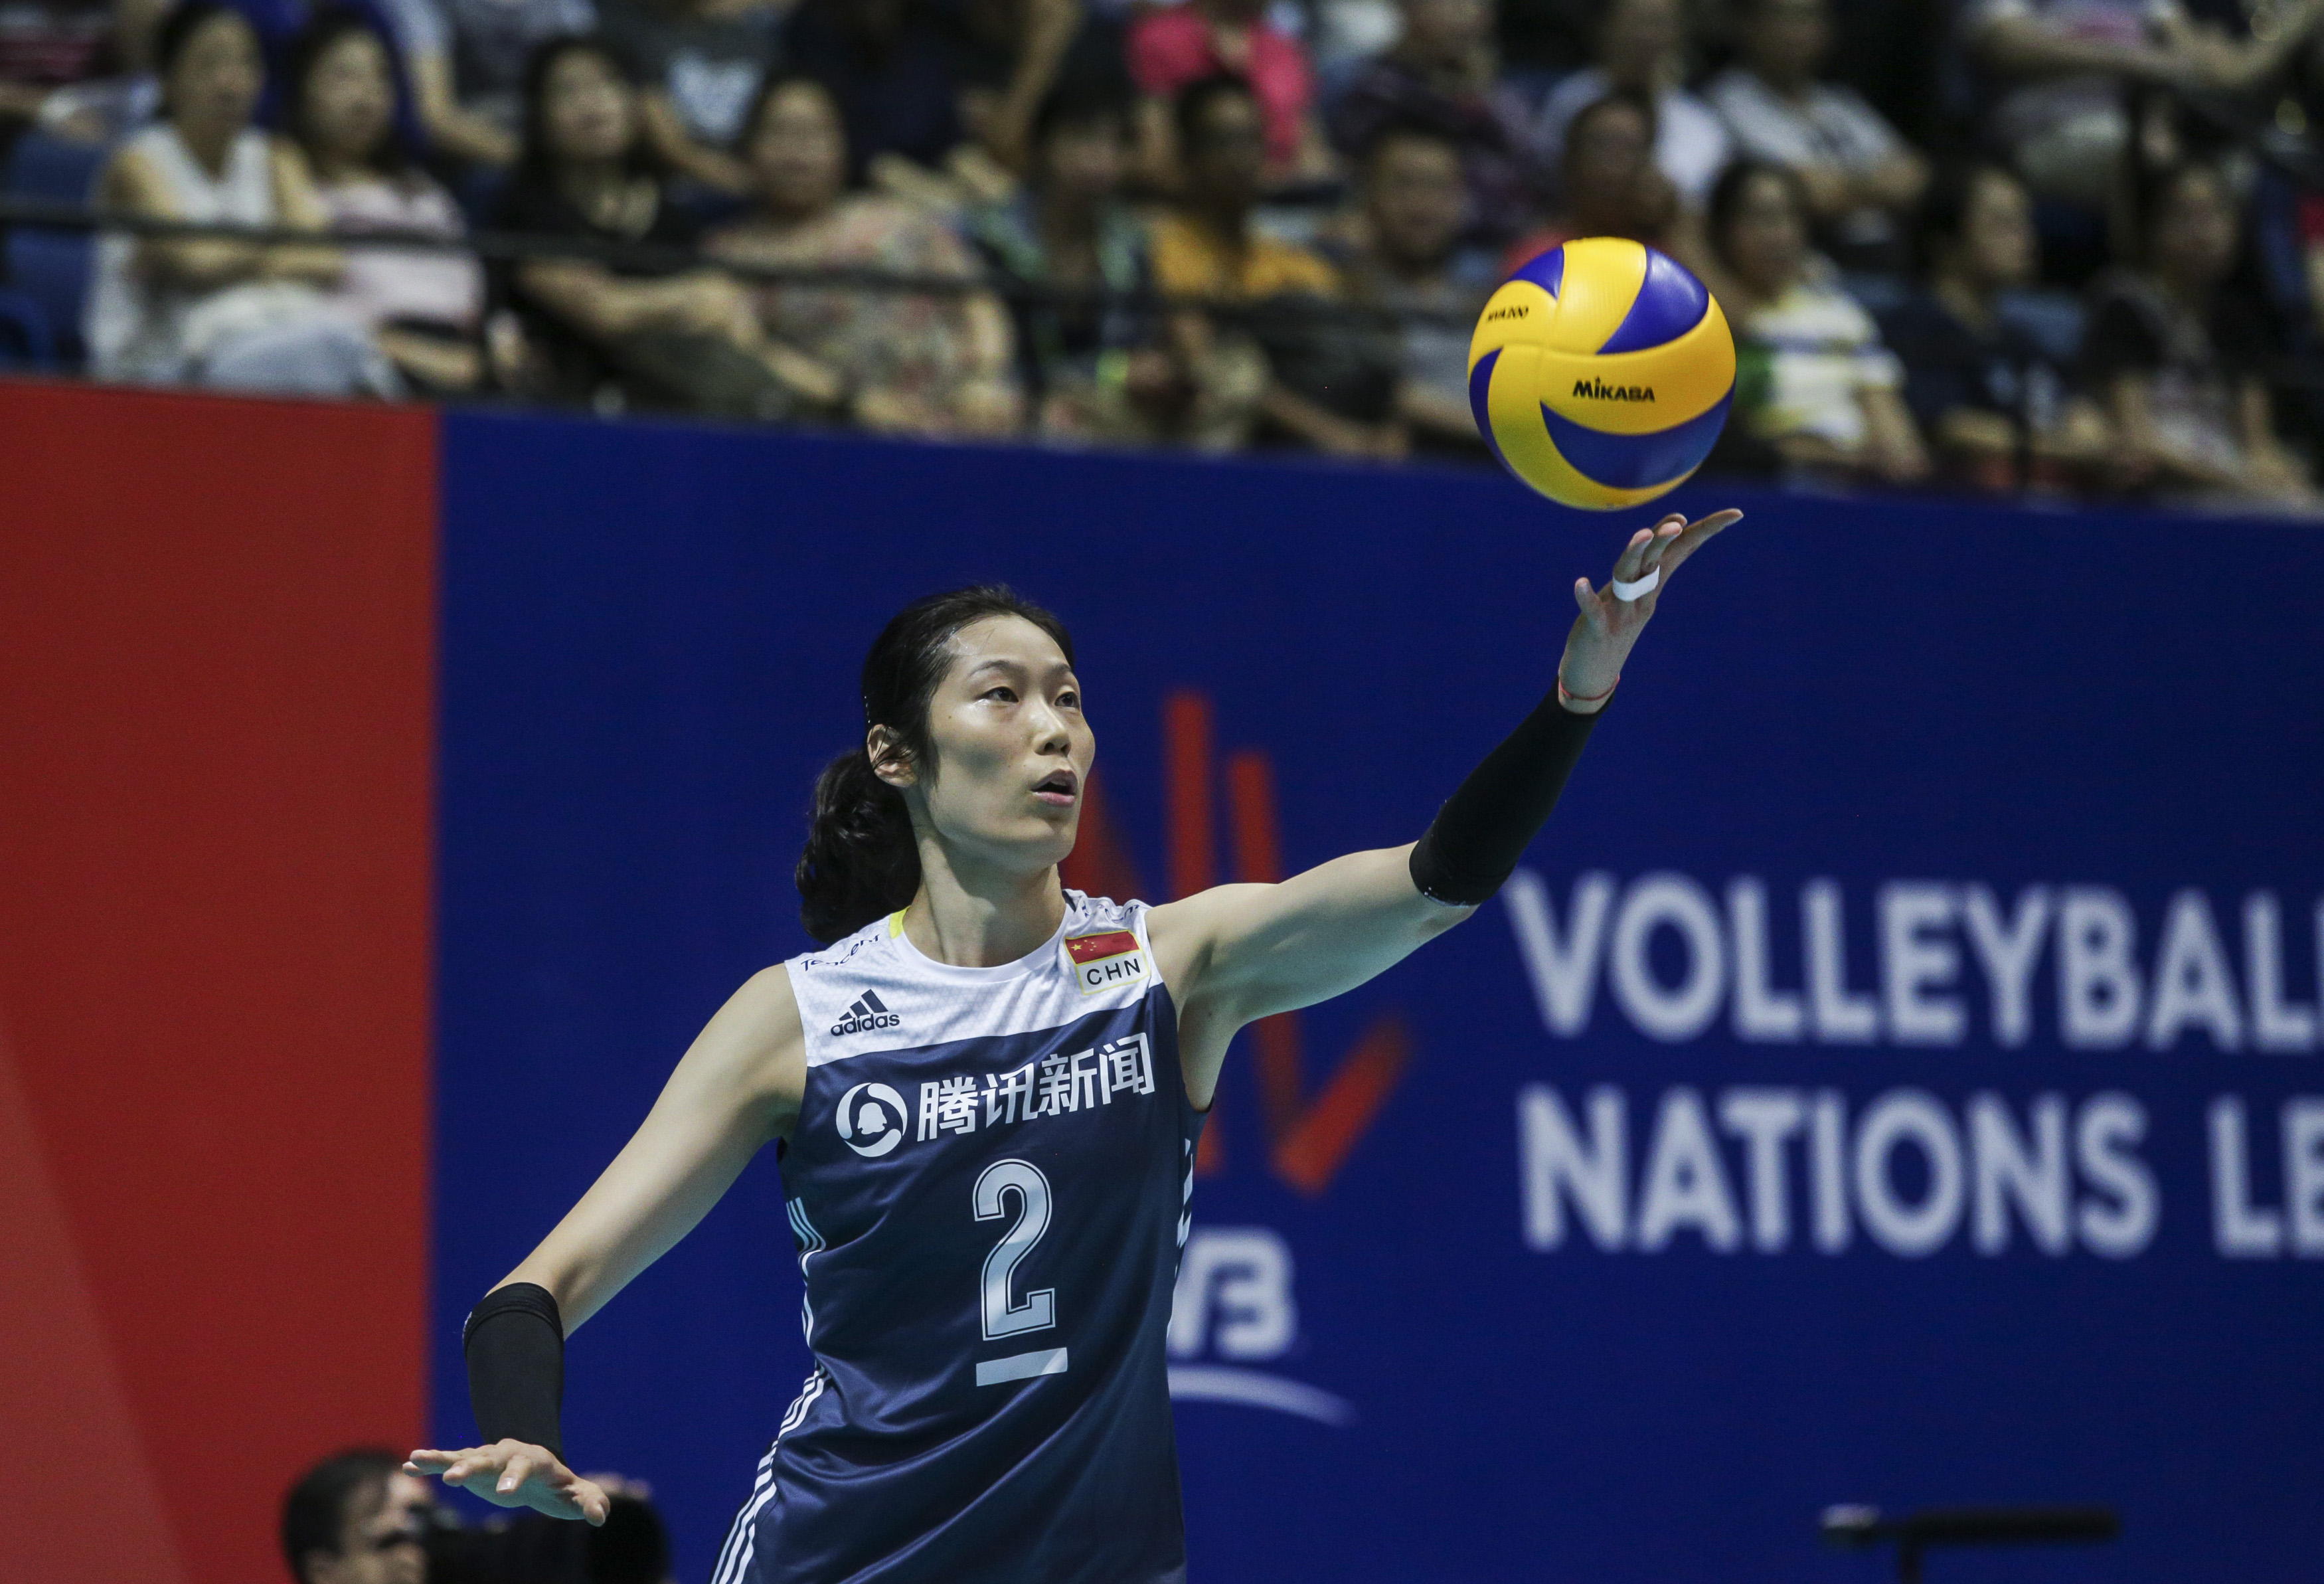 Vnl2020 News Detail World S Best Meet In Nanjing Ahead Of Volleyball Nations League Finals Volleyball Nations League 2021